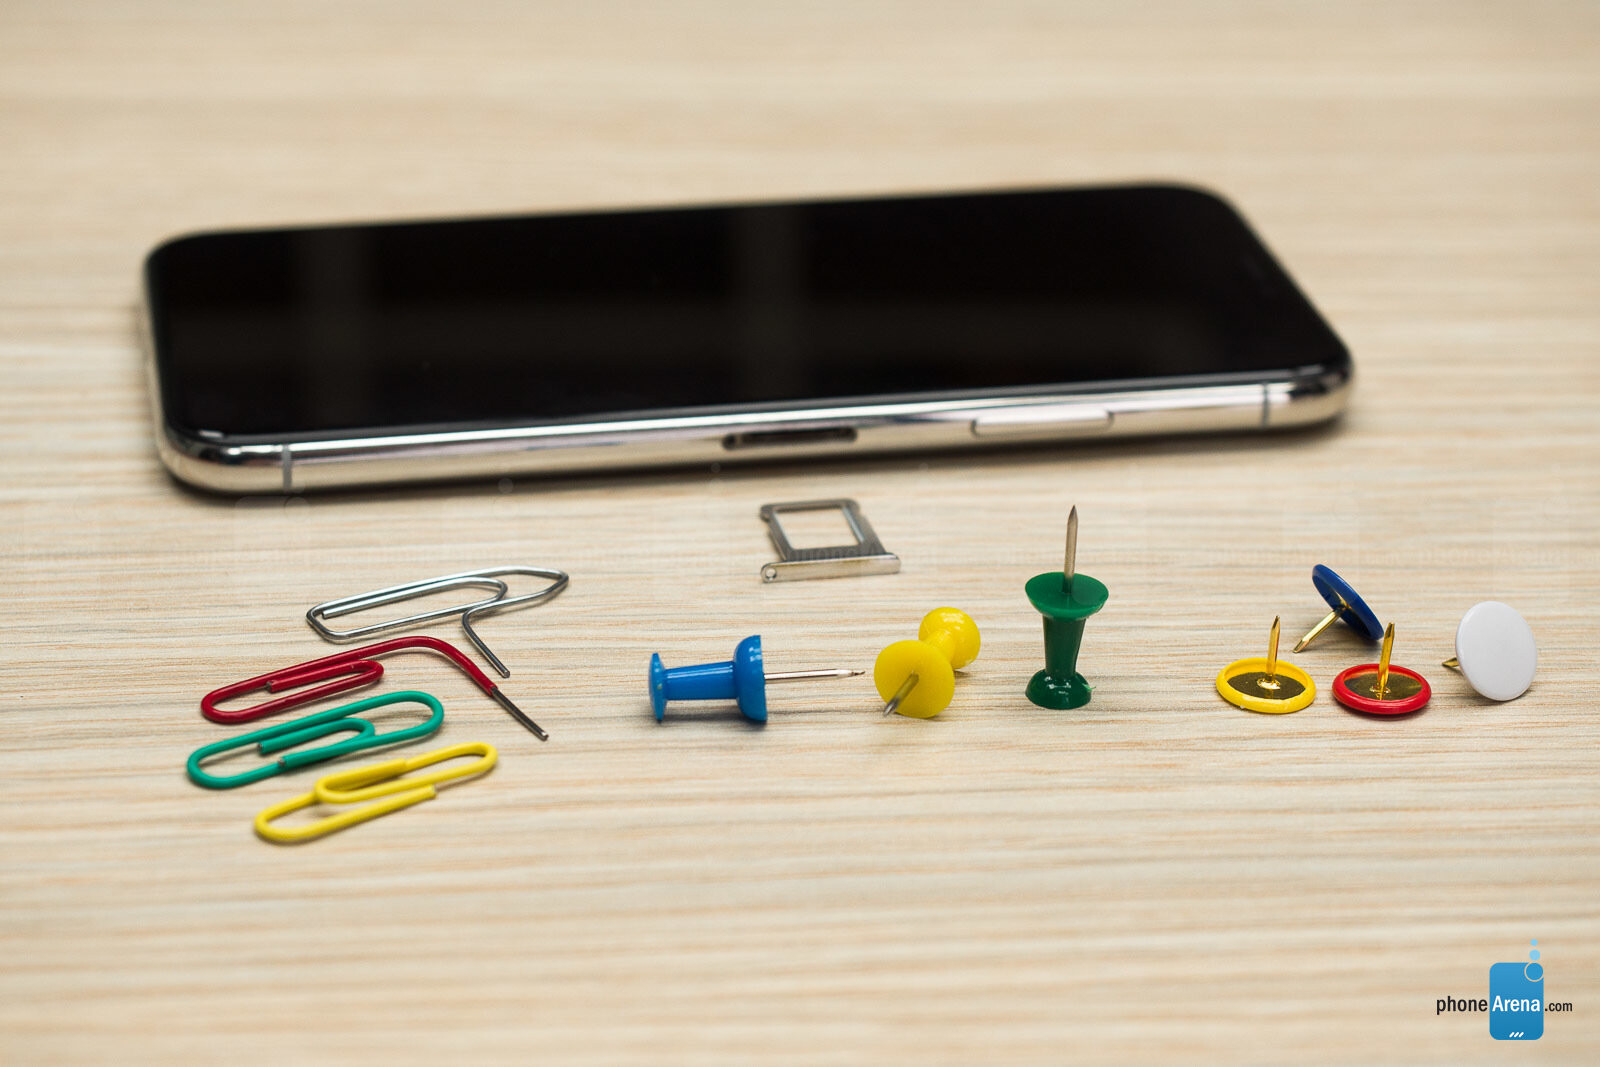 How to open a SIM card tray when an ejector tool isn't